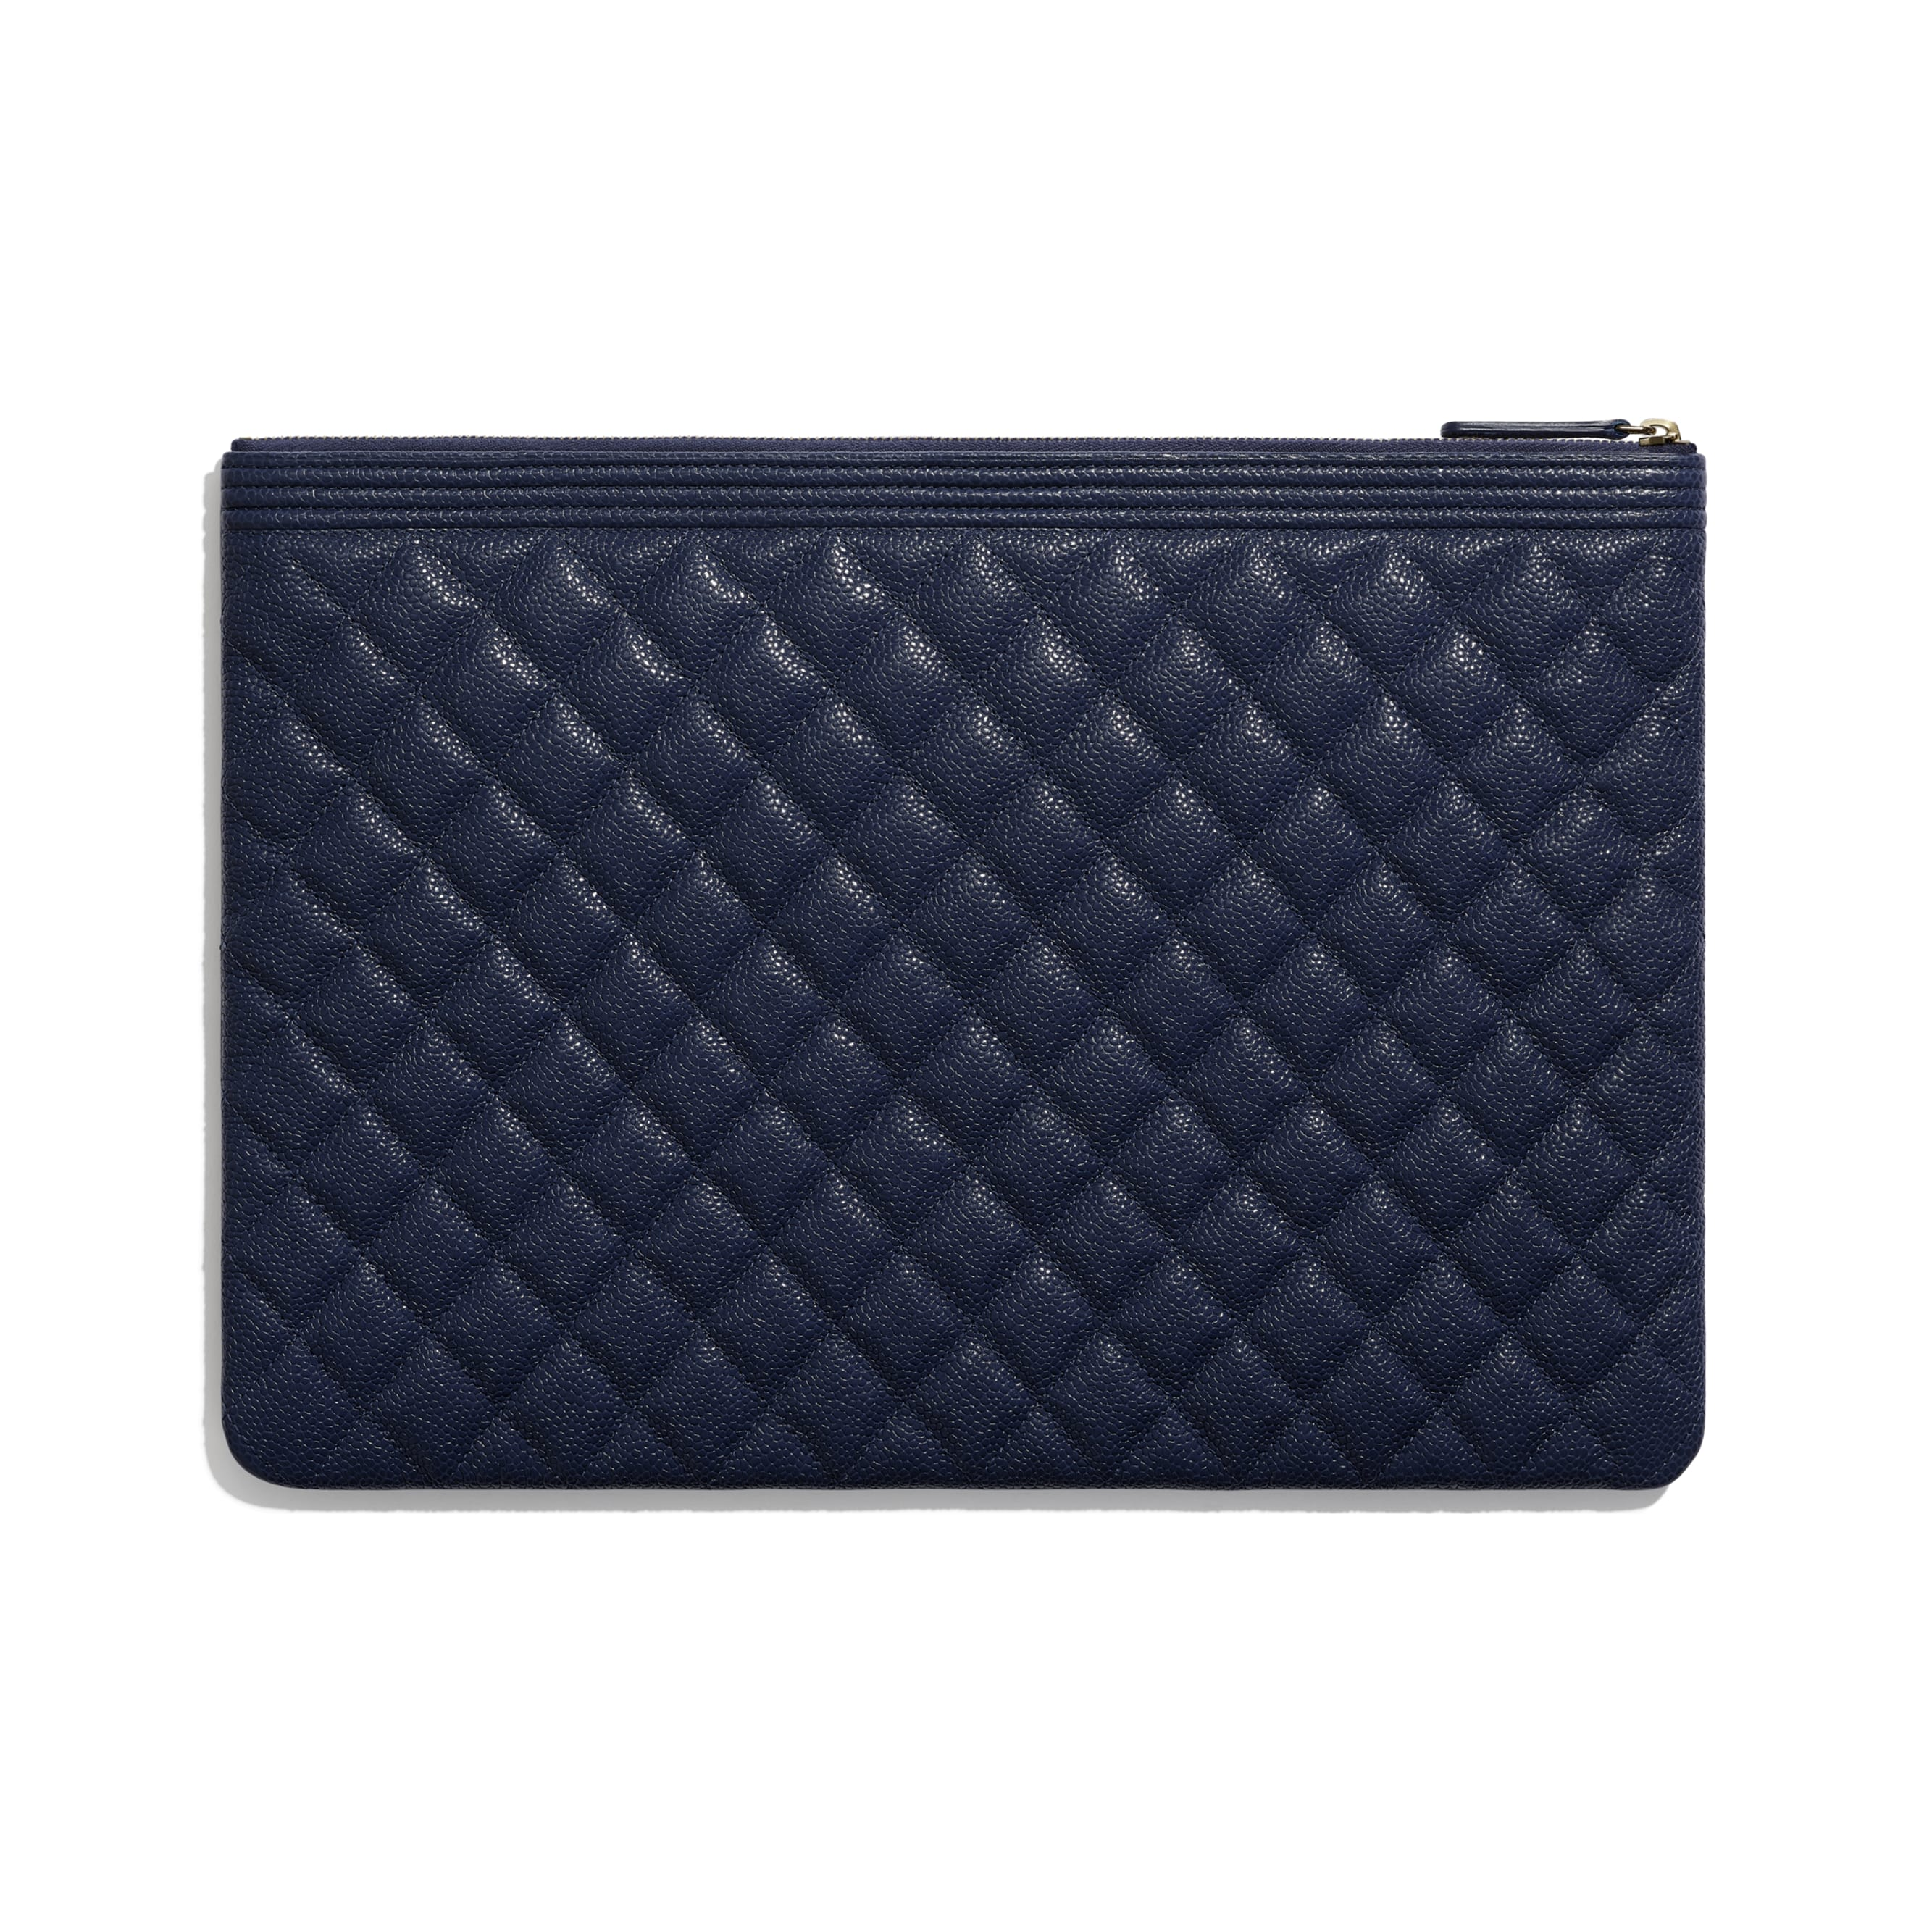 BOY CHANEL Large Pouch - Navy Blue - Grained Shiny Calfskin & Gold-Tone Metal - Alternative view - see standard sized version